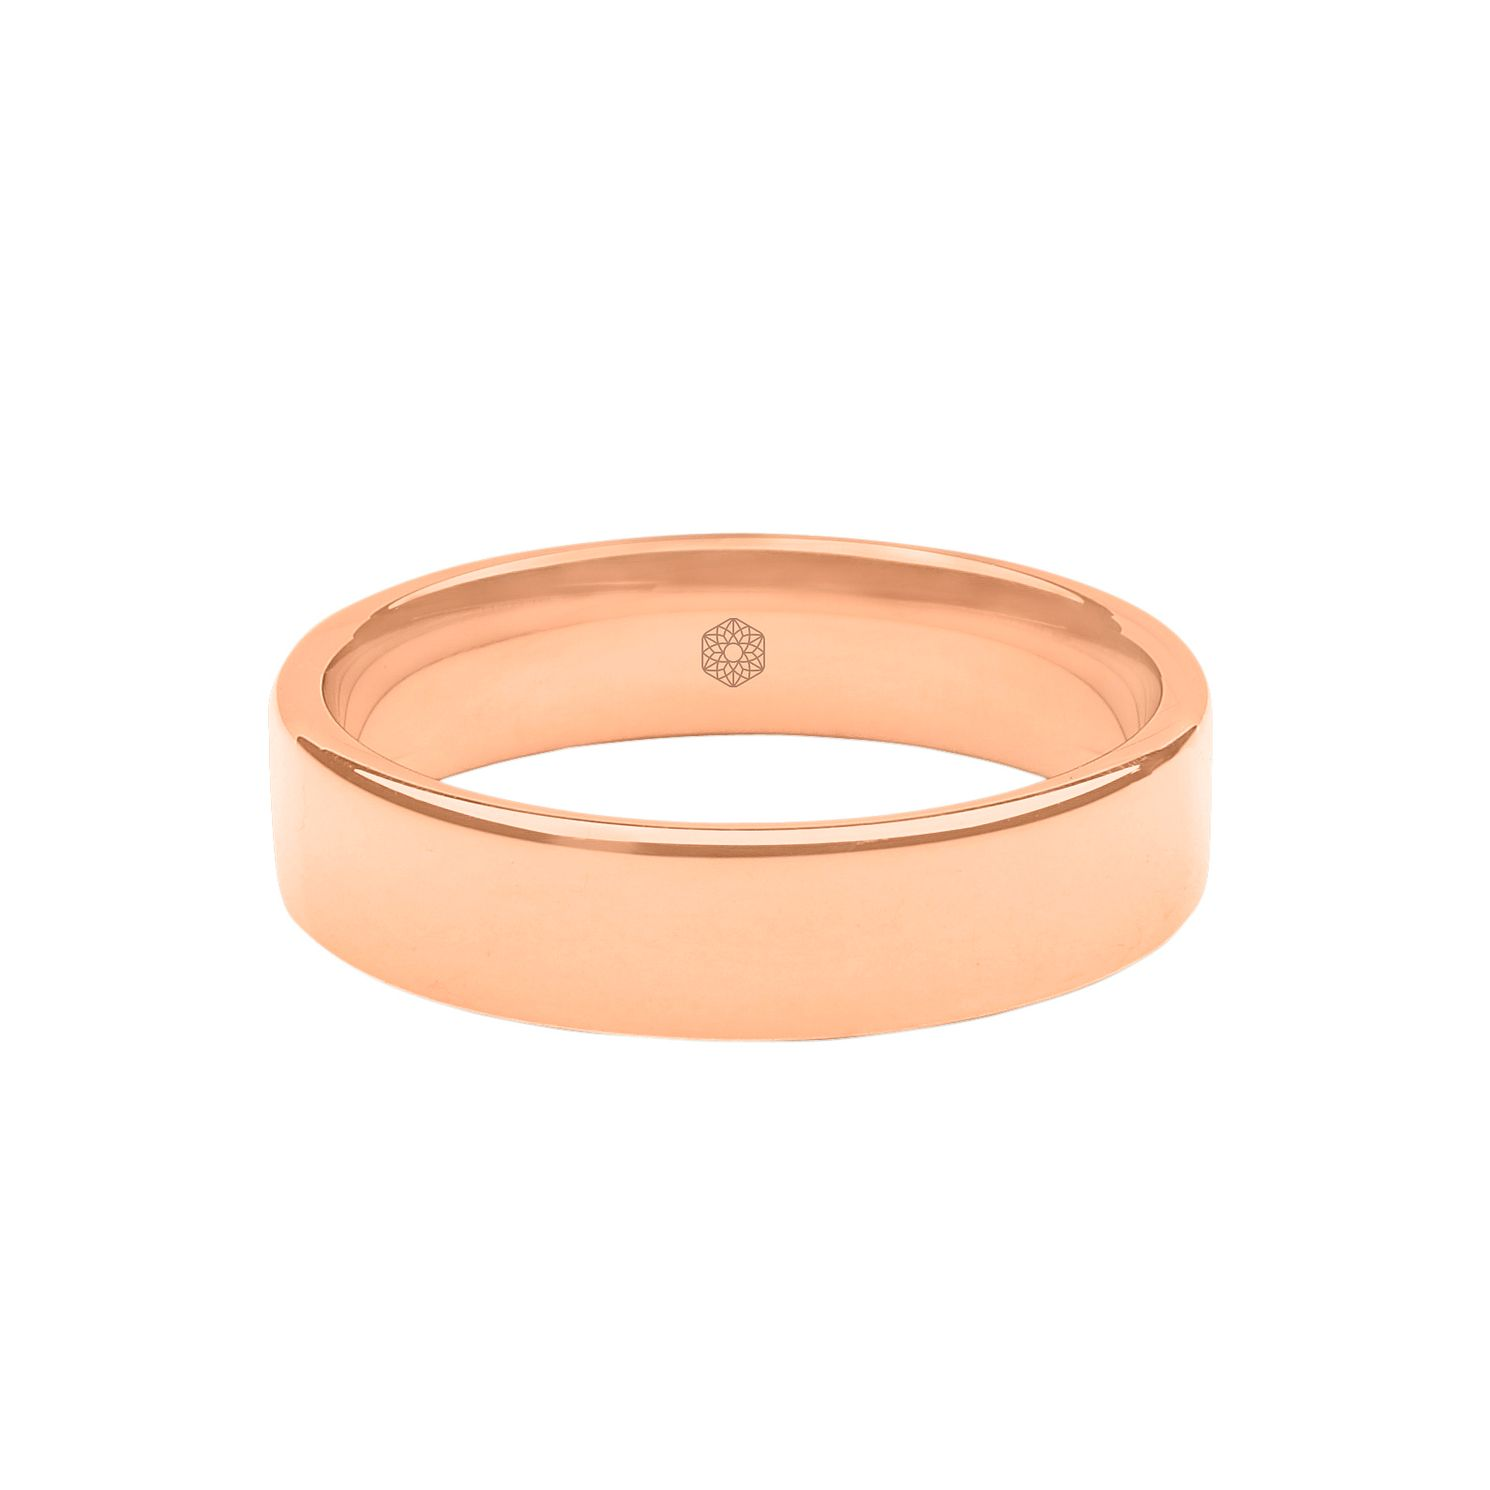 Baird Mint 18ct Rose Gold Blush 5mm Flat Ring - Product number 8186766